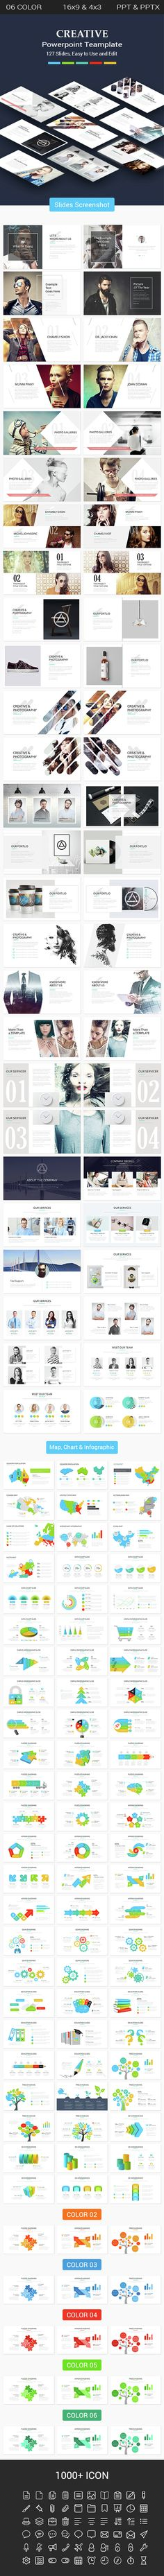 Creative Powerpoint Presentation Template. Download here: http://graphicriver.net/item/creative-powerpoint-presentation-template/14831053?ref=ksioks